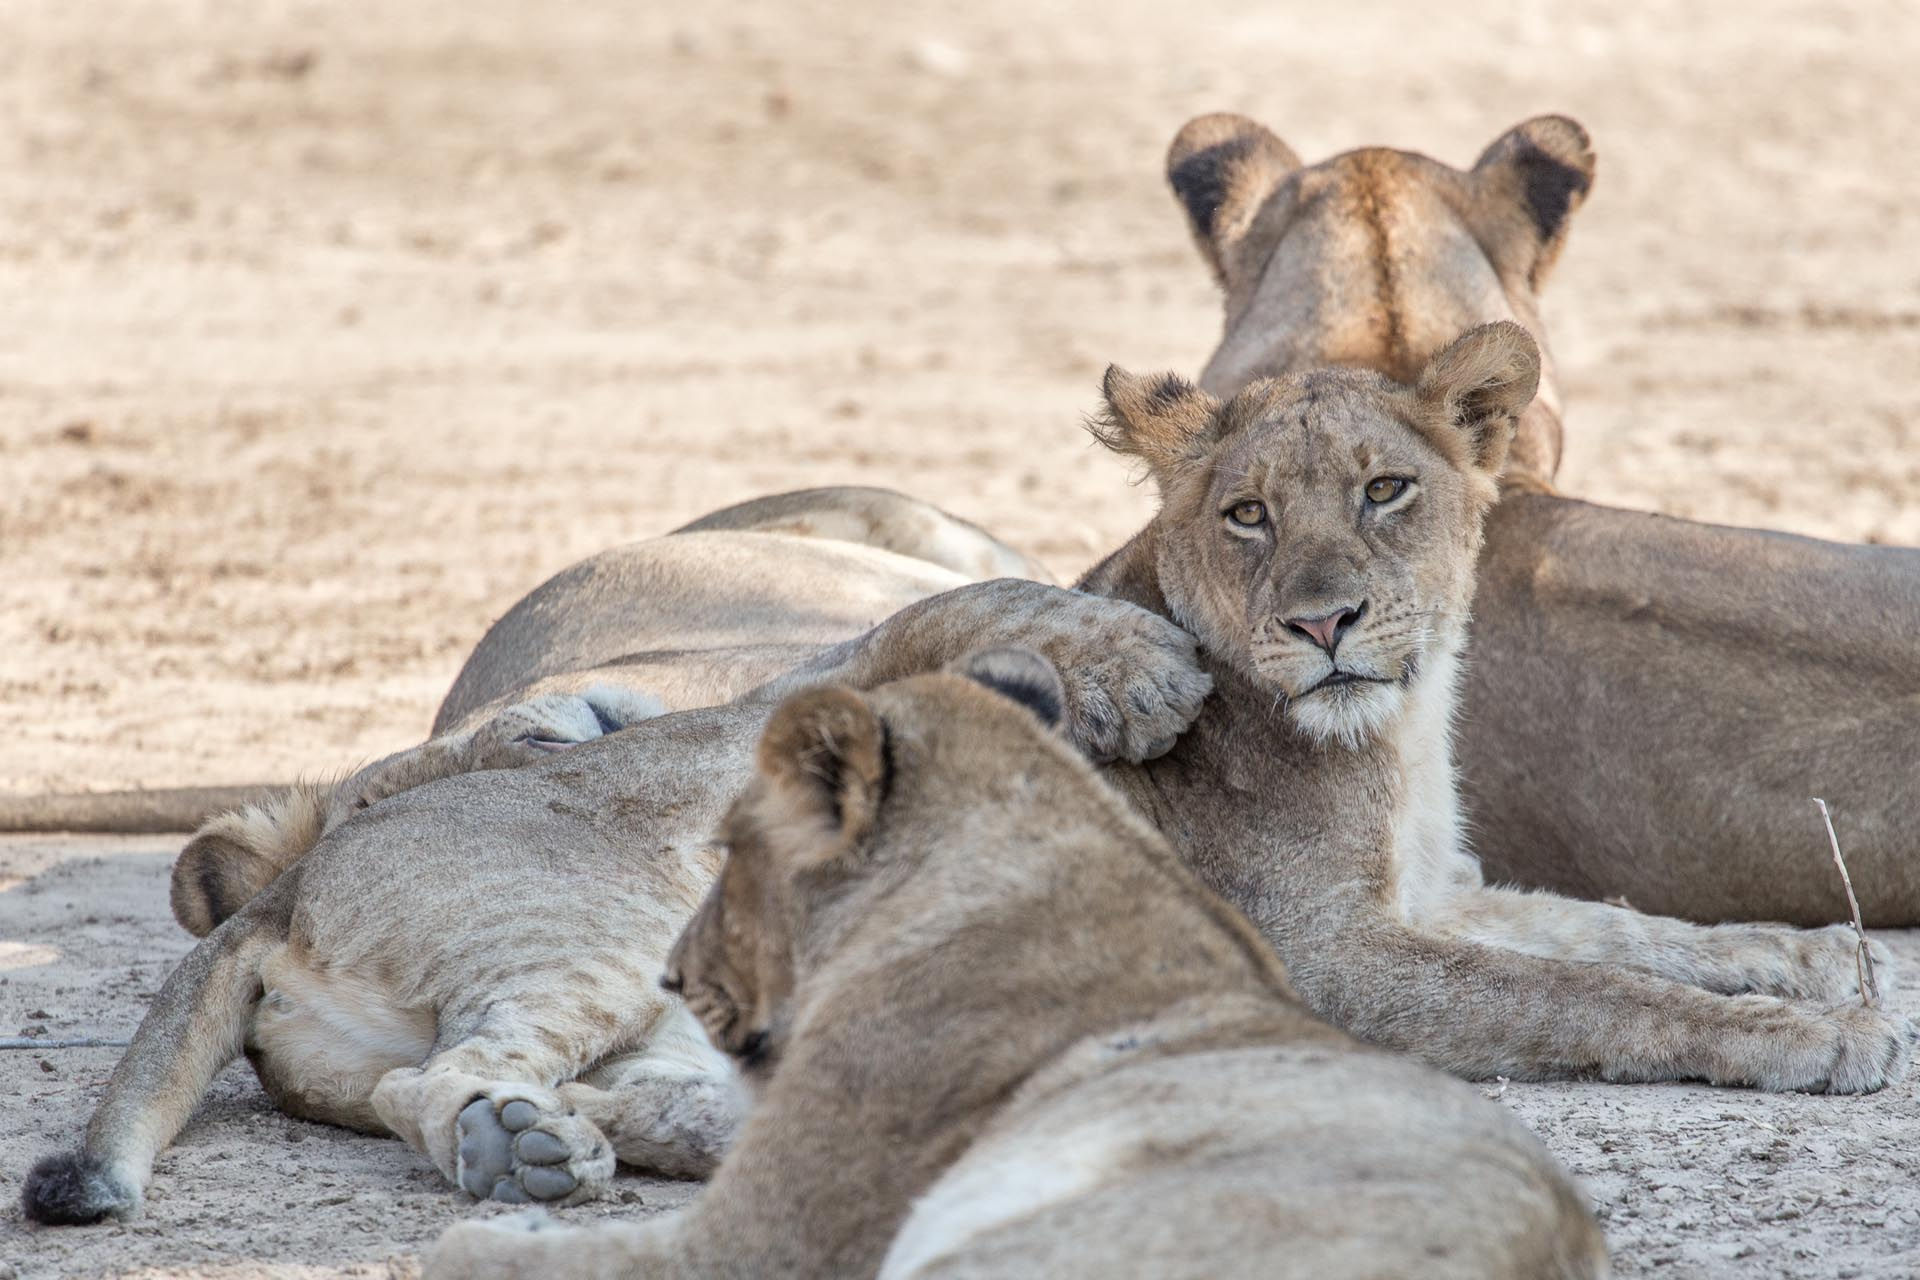 Even lions need a good cuddle sometimes!